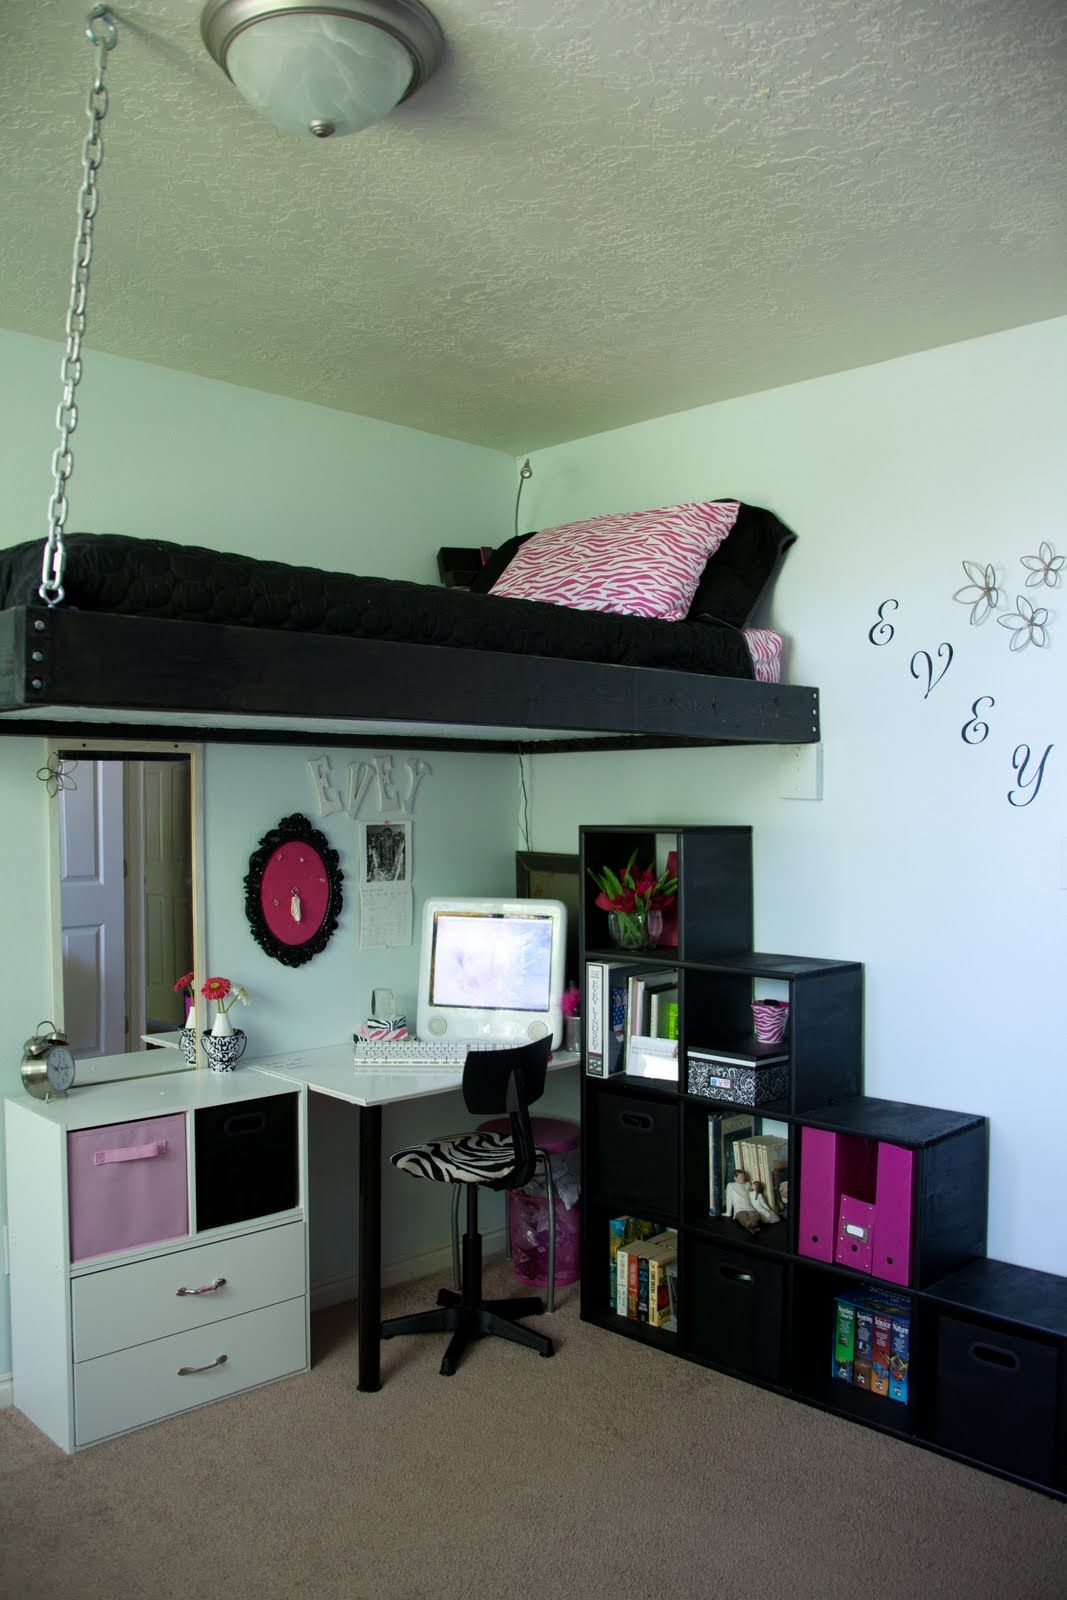 Homemade Loft Bed Great Way To Save E Love This Idea